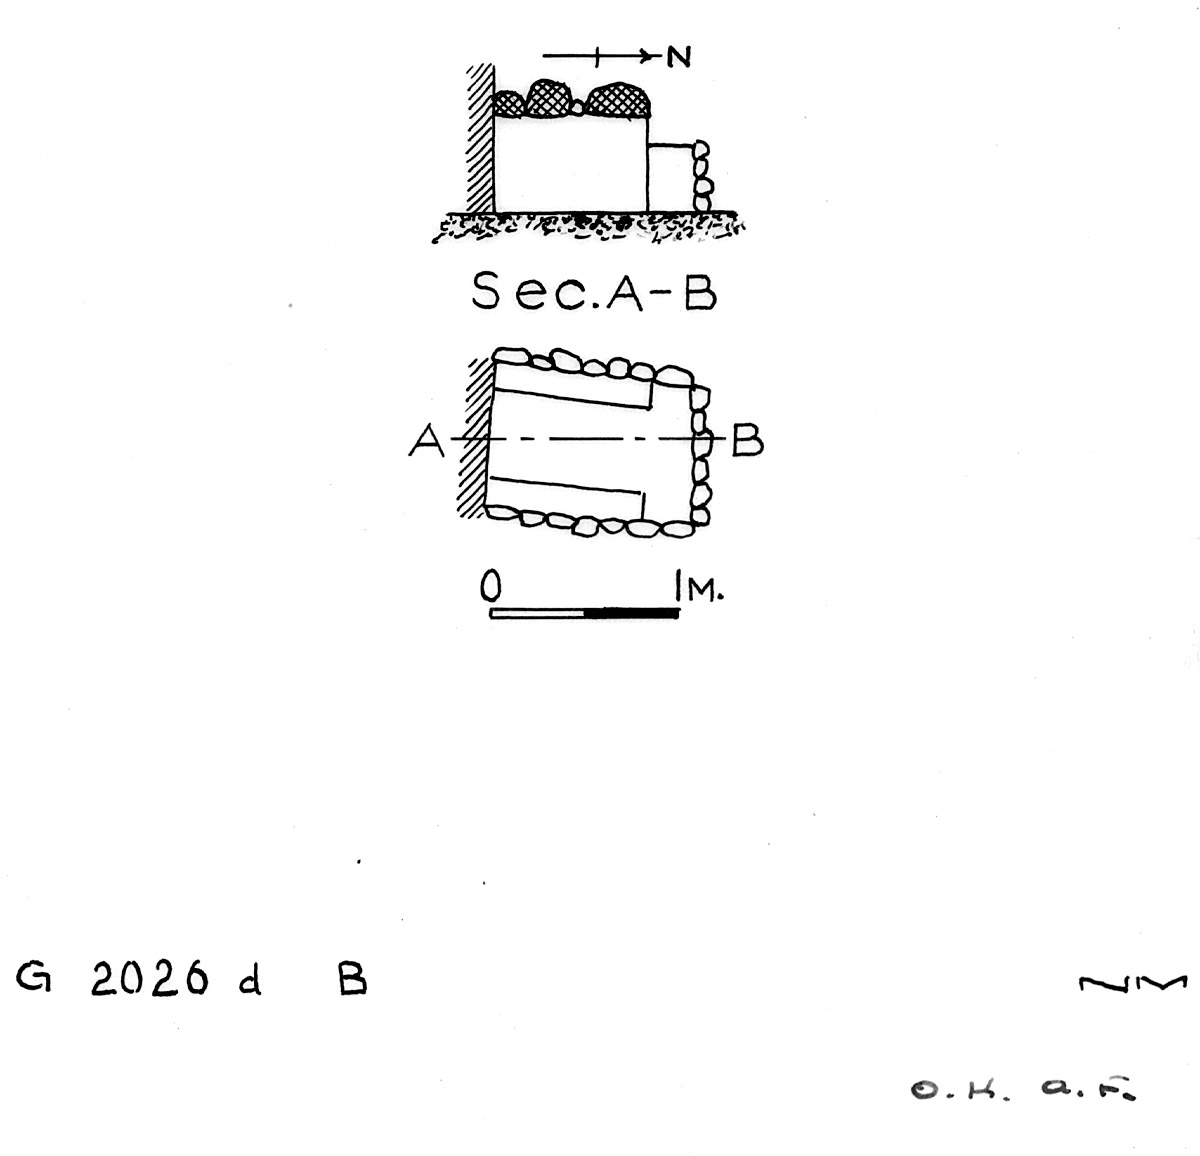 Maps and plans: G 2026d, Shaft B